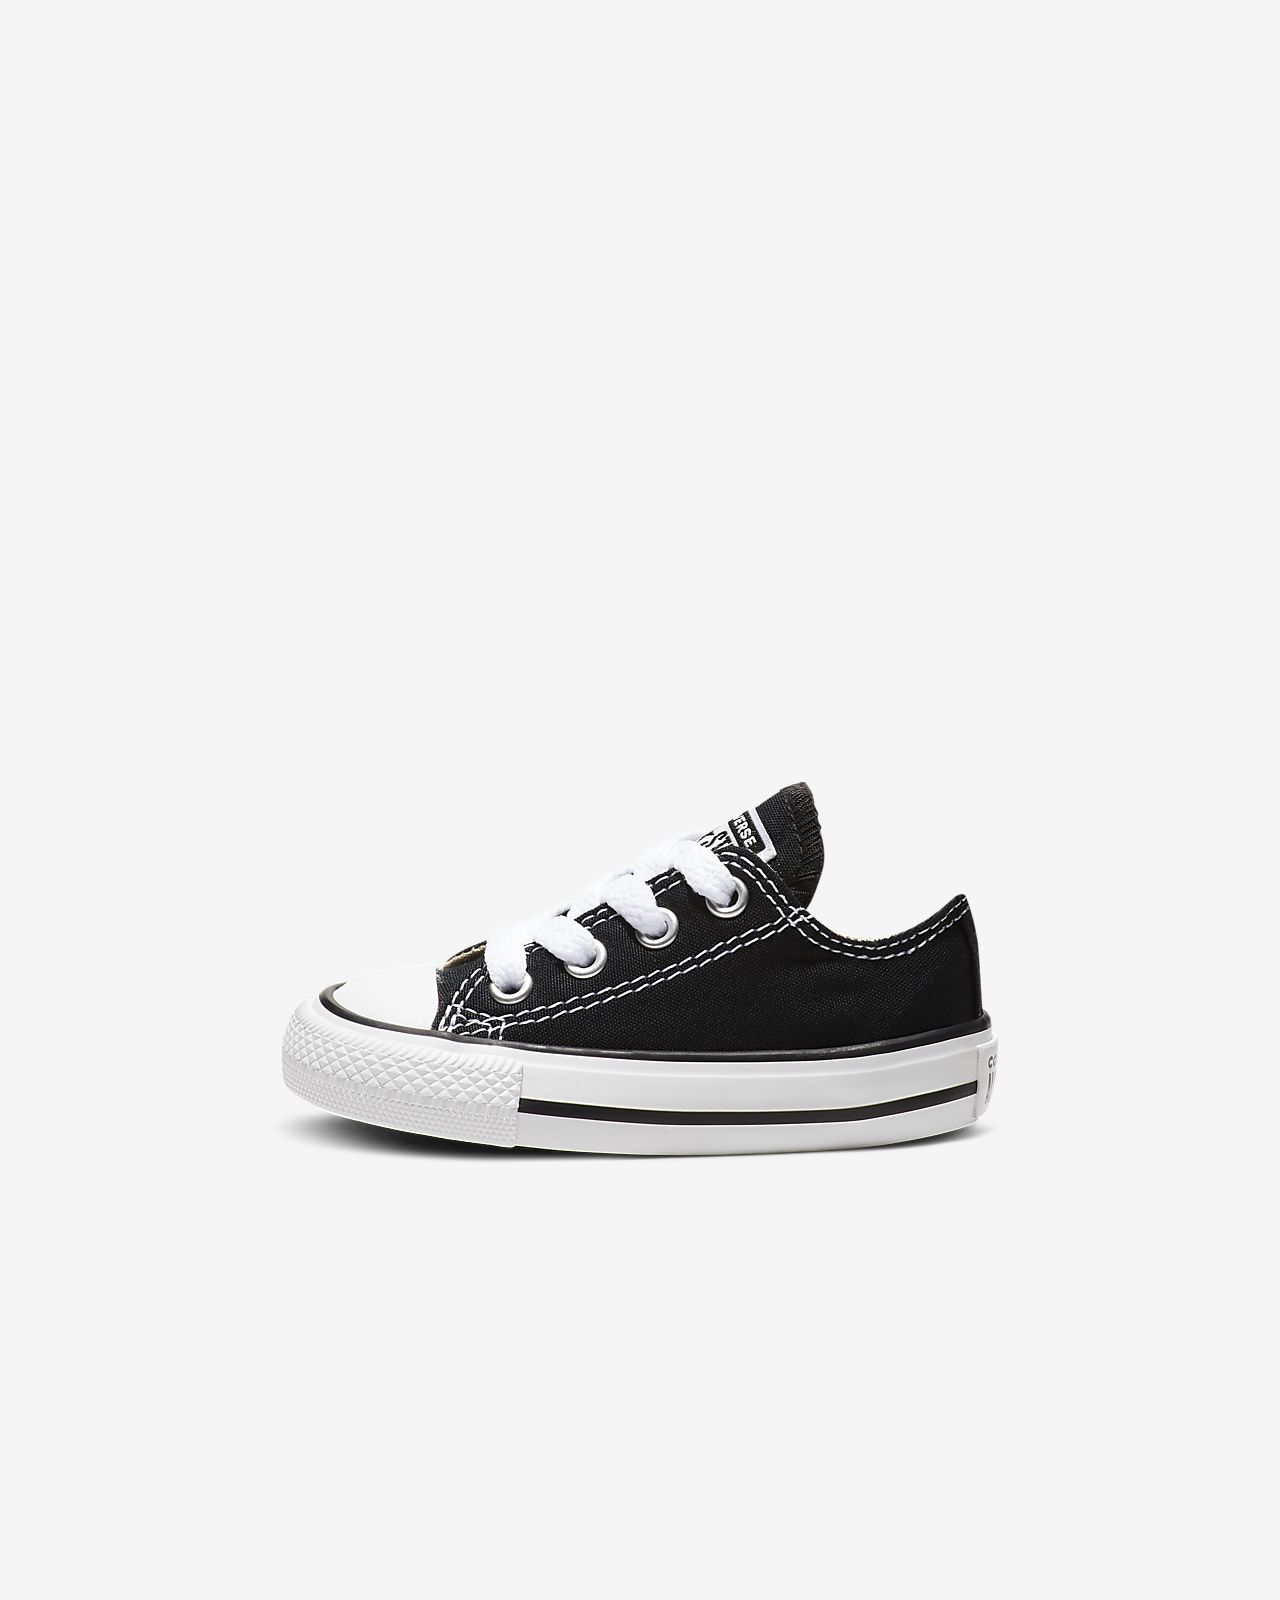 bad5a7fabf7104 Converse Chuck Taylor All Star Low Top Infant Toddler Shoe. Nike.com